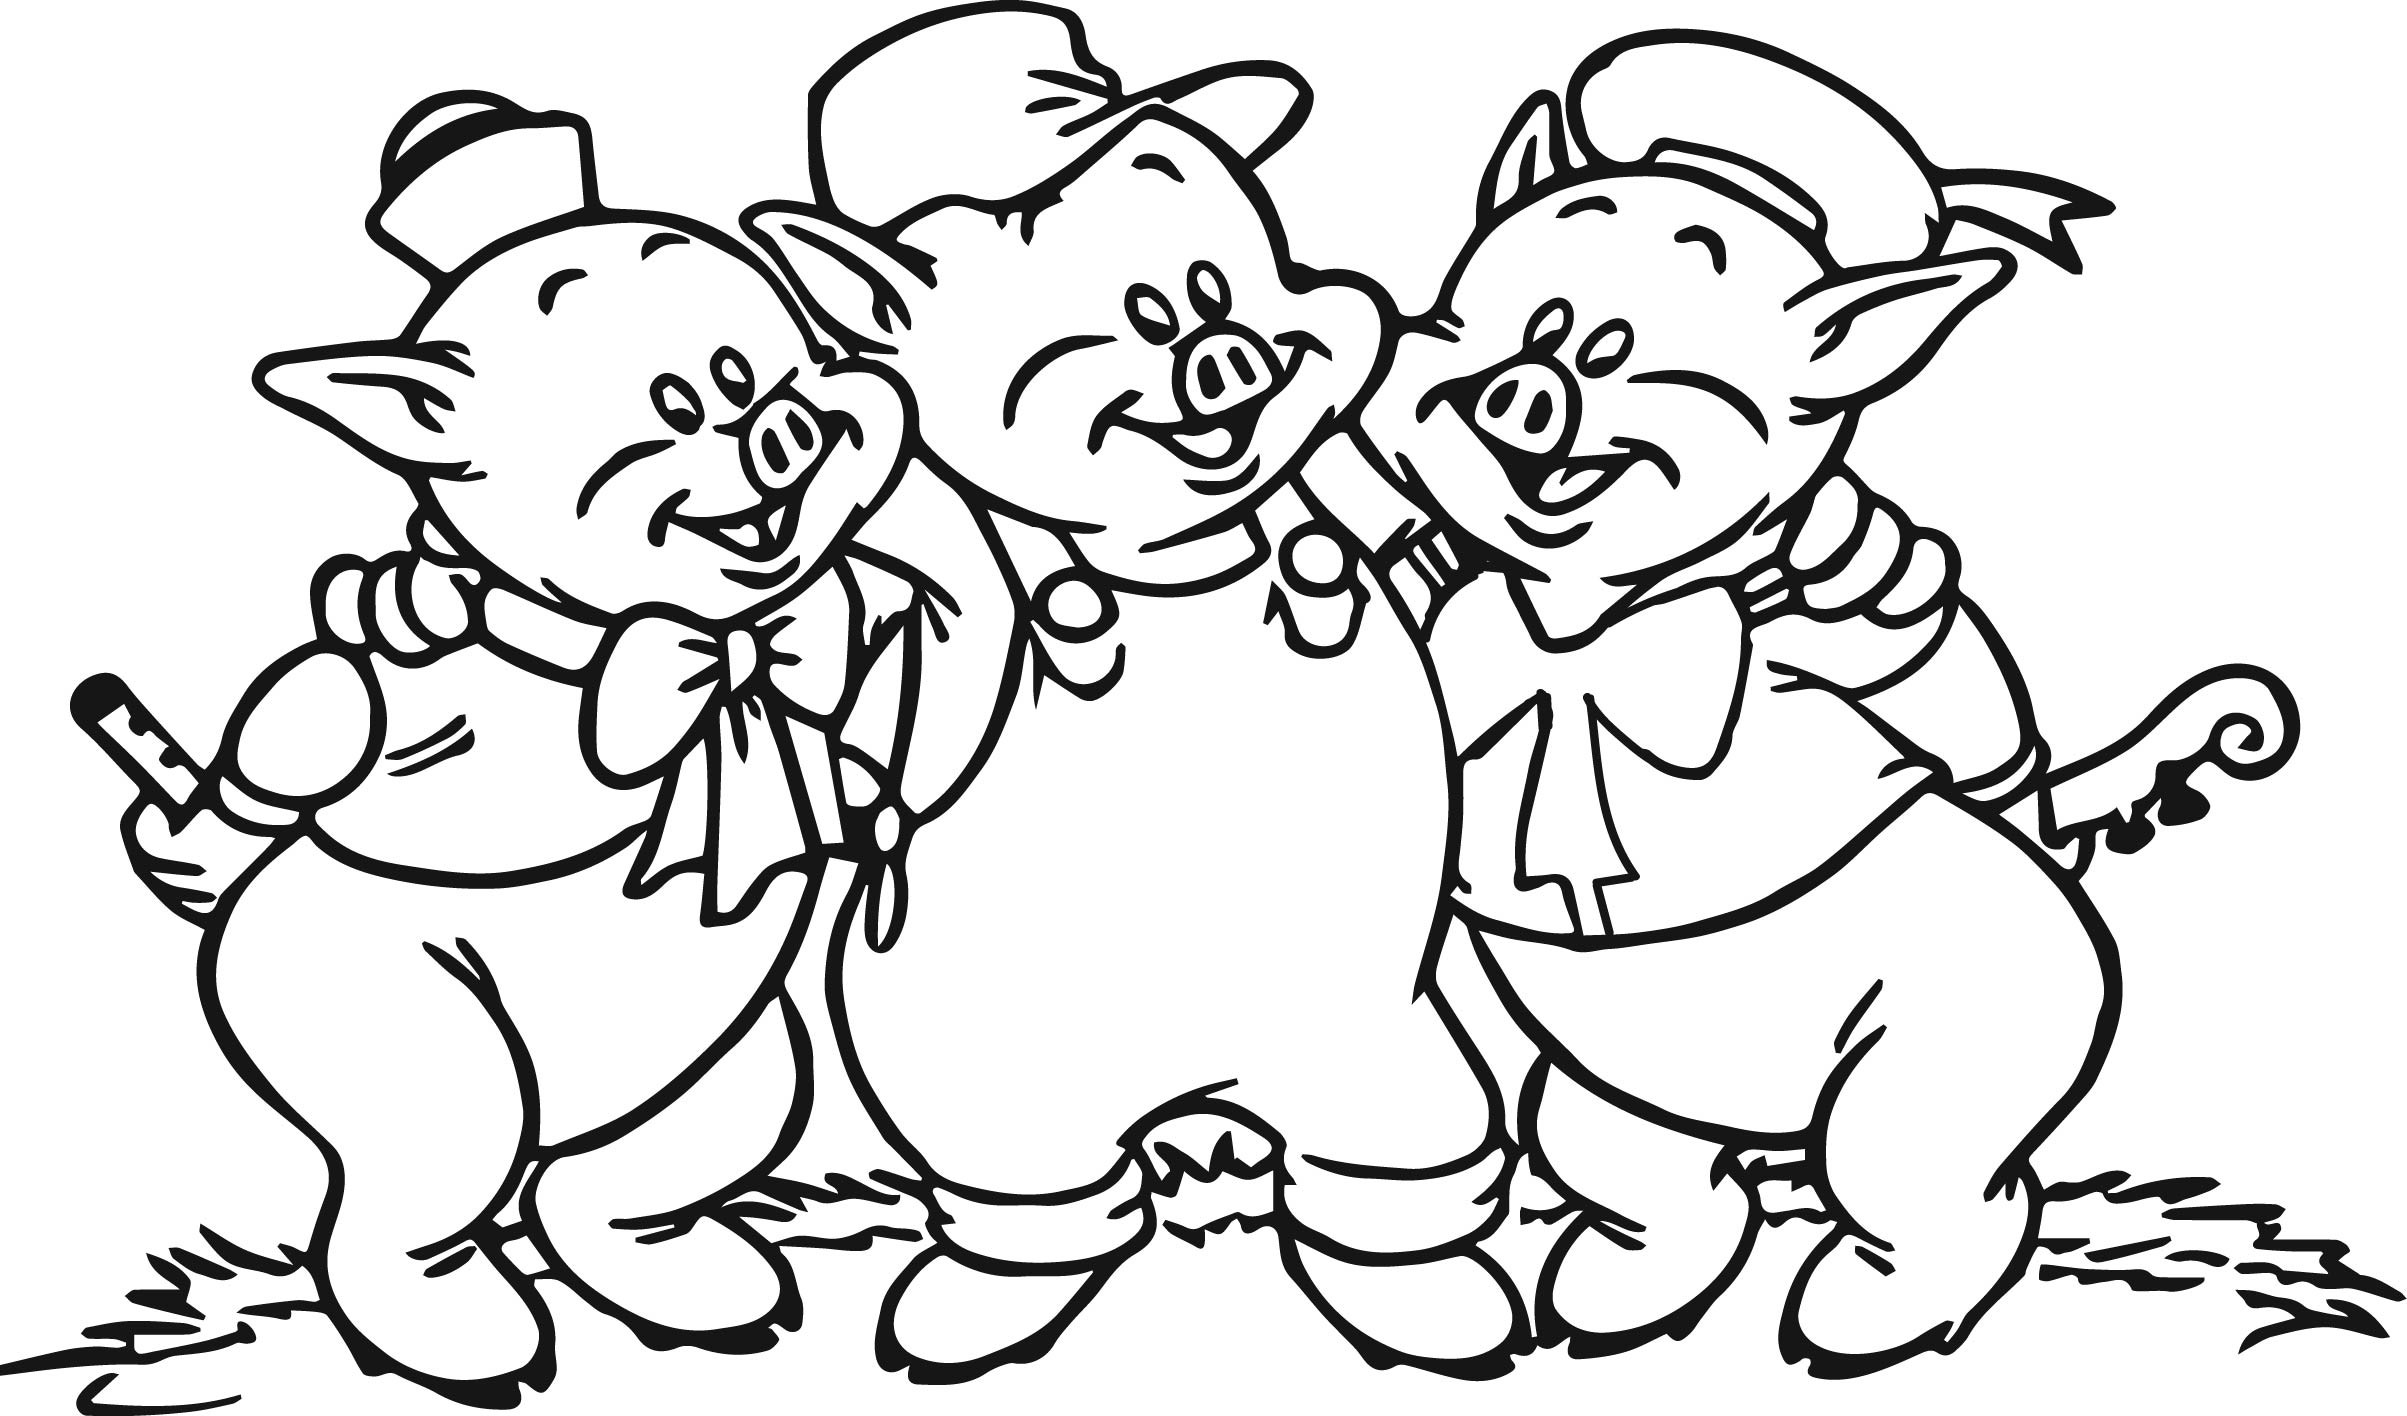 3 little pigs coloring page printable coloring pictures of the three little pigs coloring little pigs 3 page